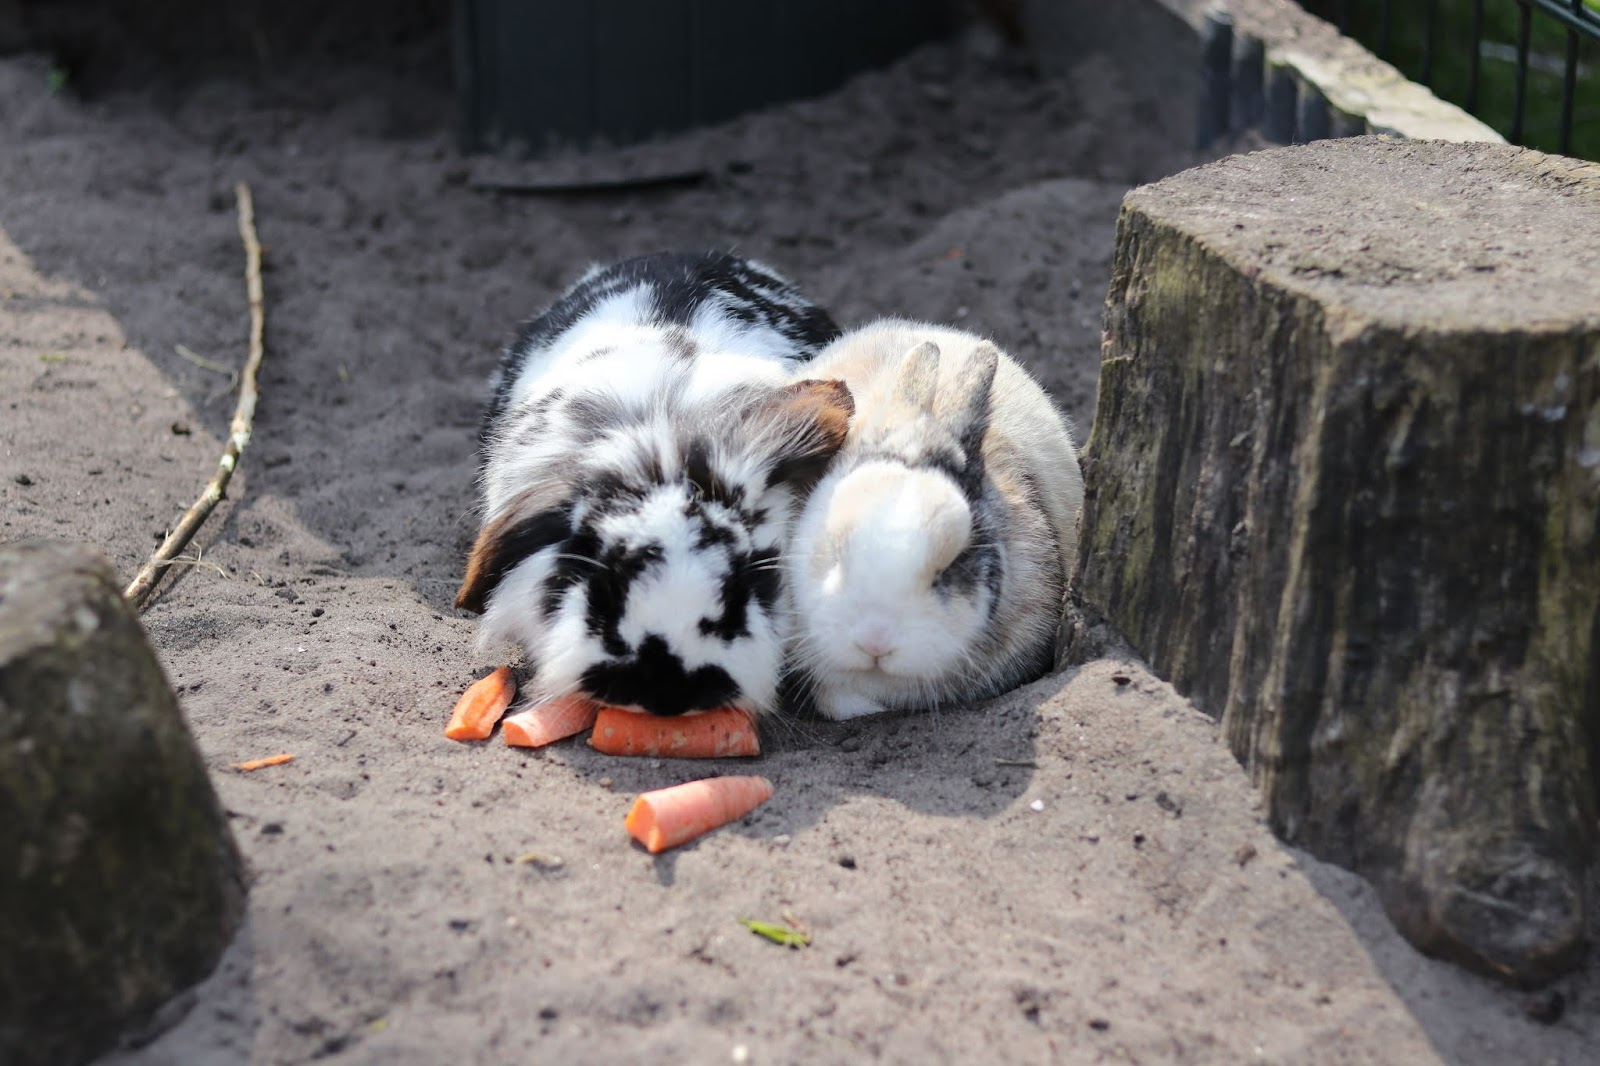 Two bunnies sharing carrots